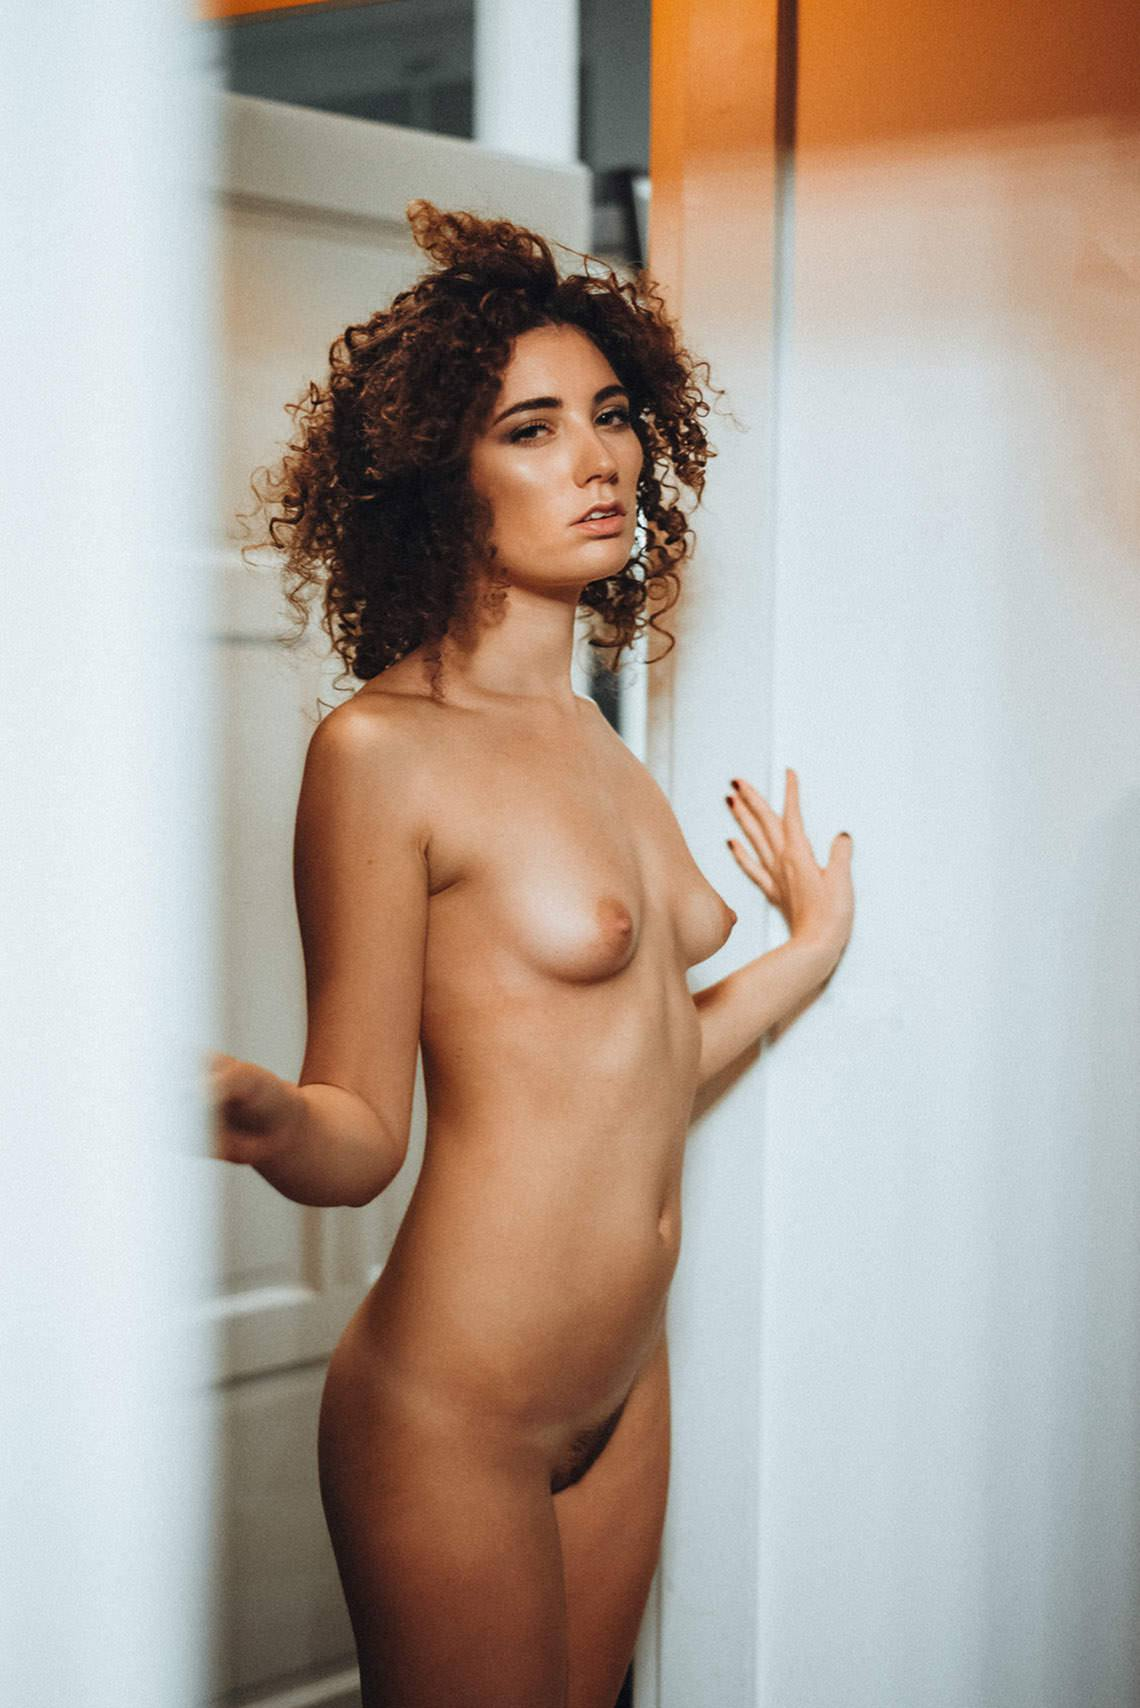 Desiree Timm – Sexy Body In Naked Photoshoot By Dennis Kilch (nsfw) 0001